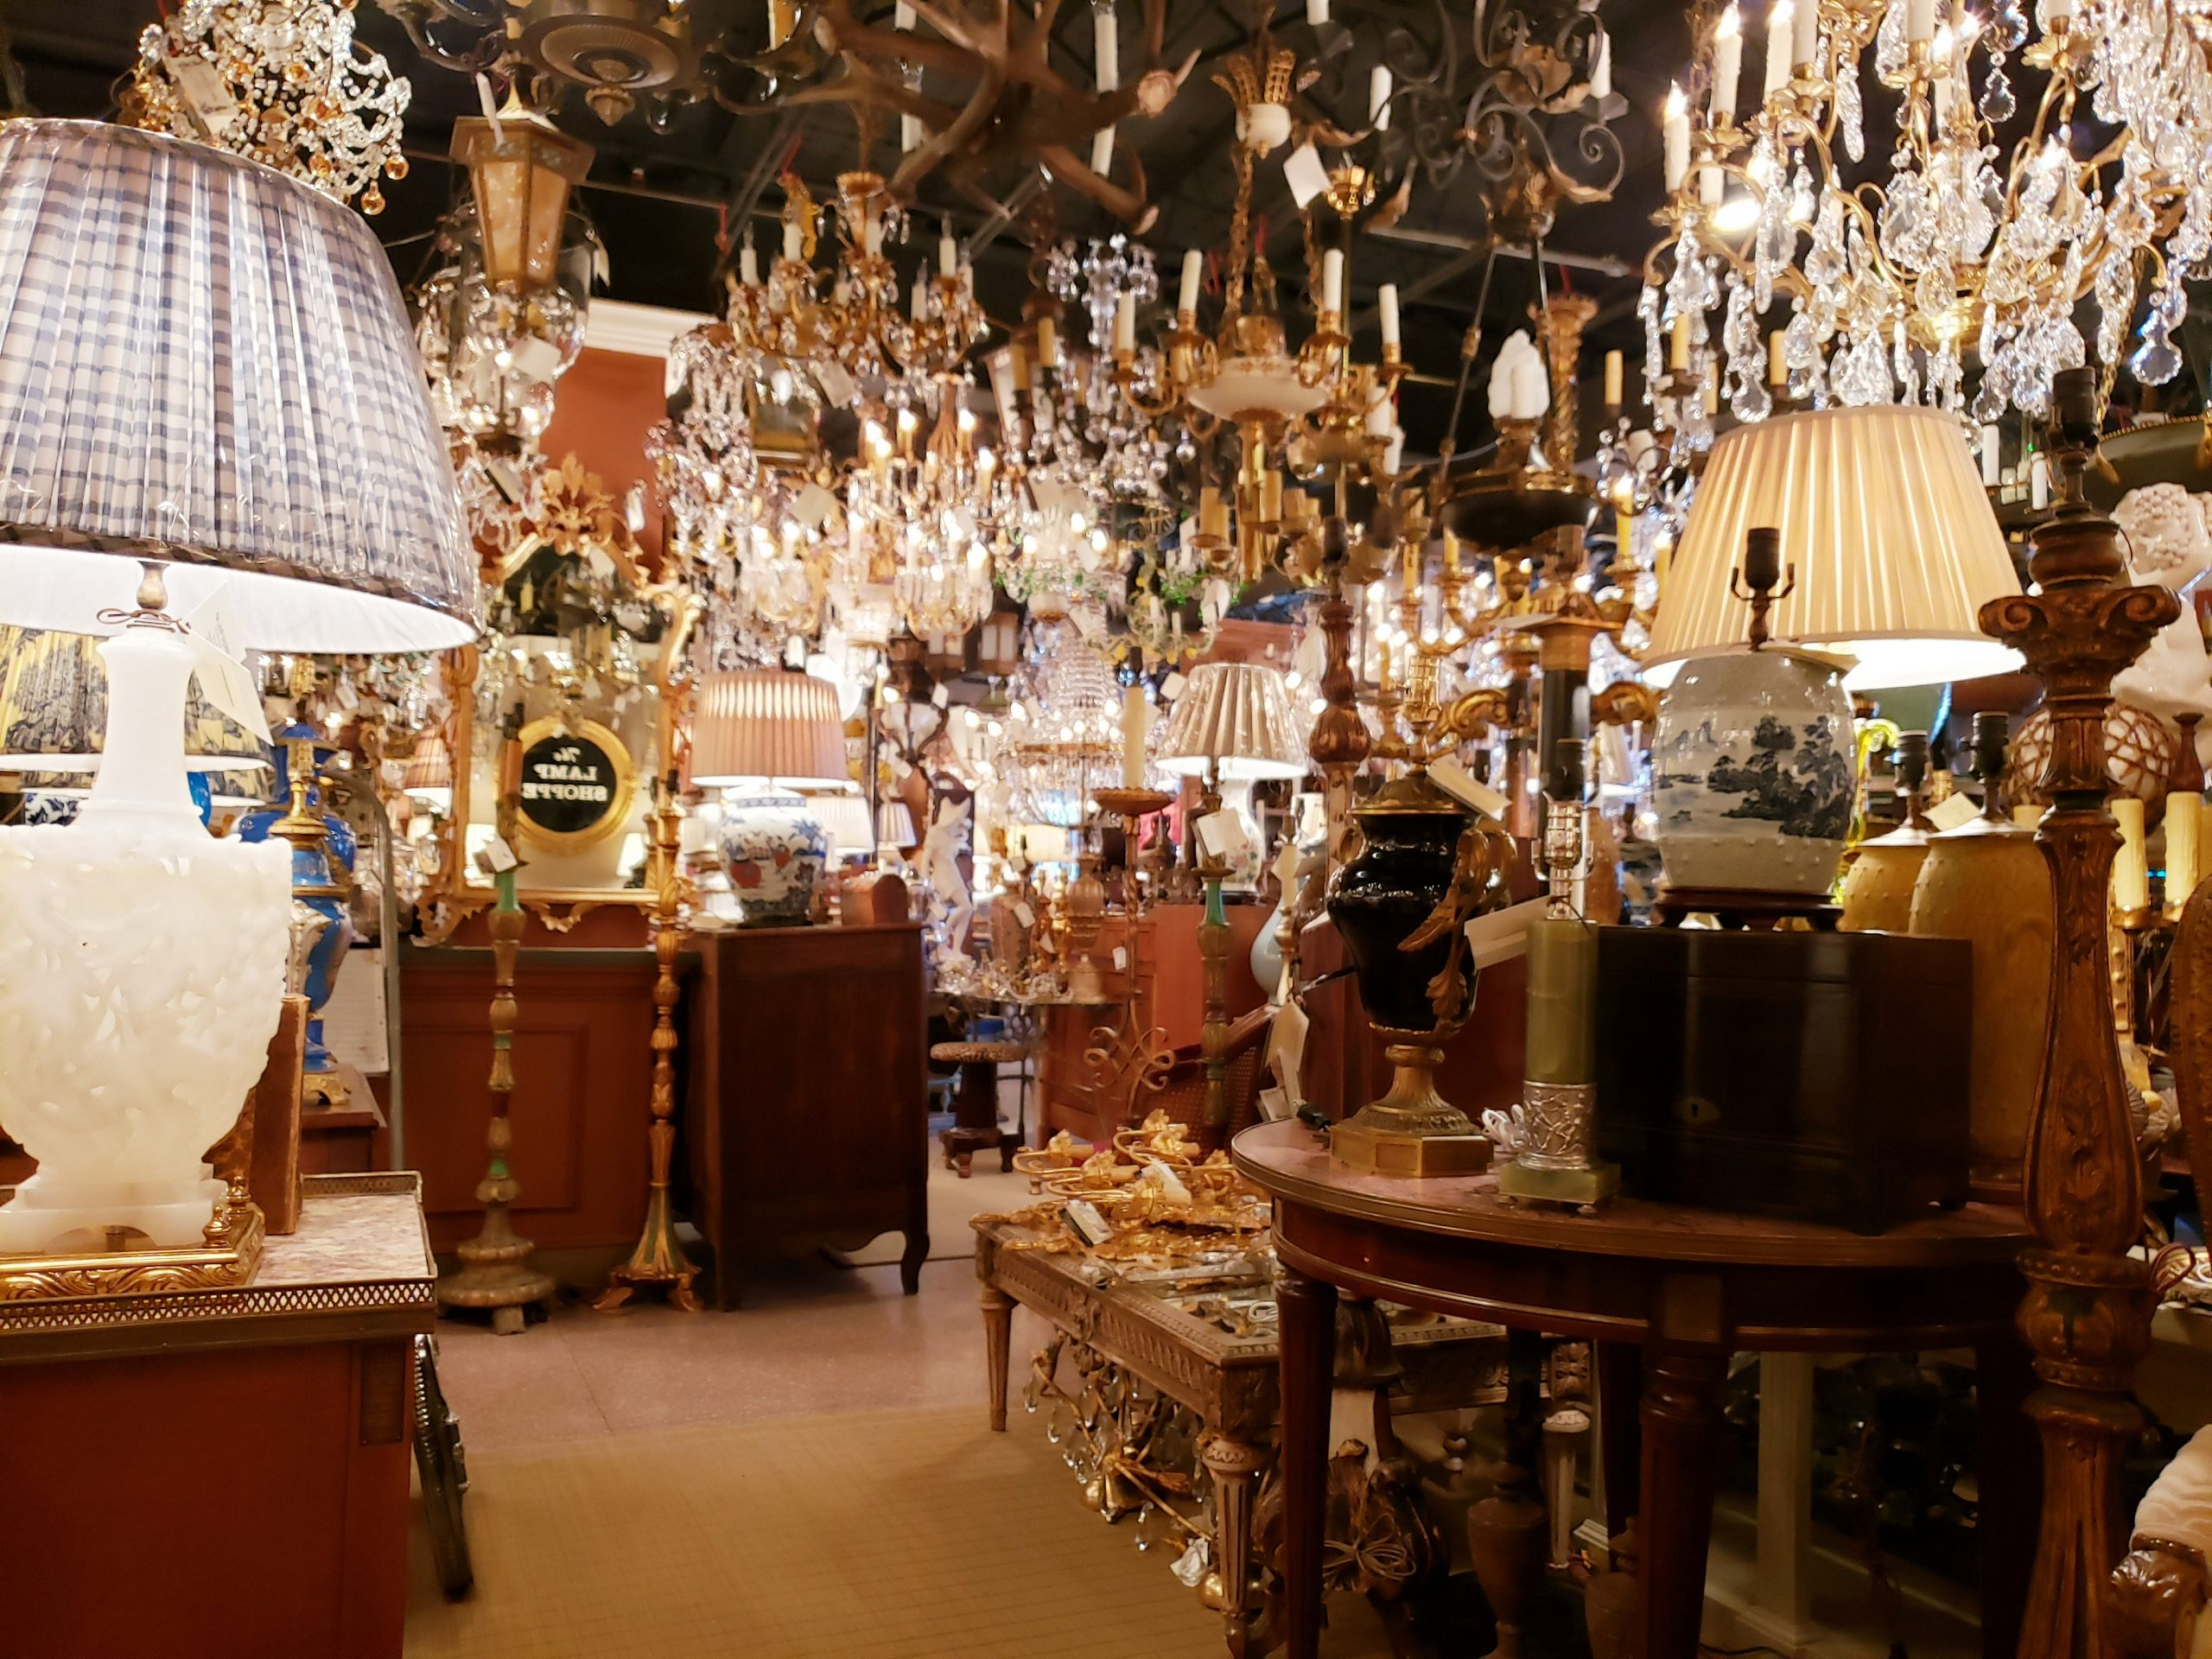 The Lamp Shoppe Atlanta - Google Smhttps://g.page/lampshoppeatlanta?weall Business Week